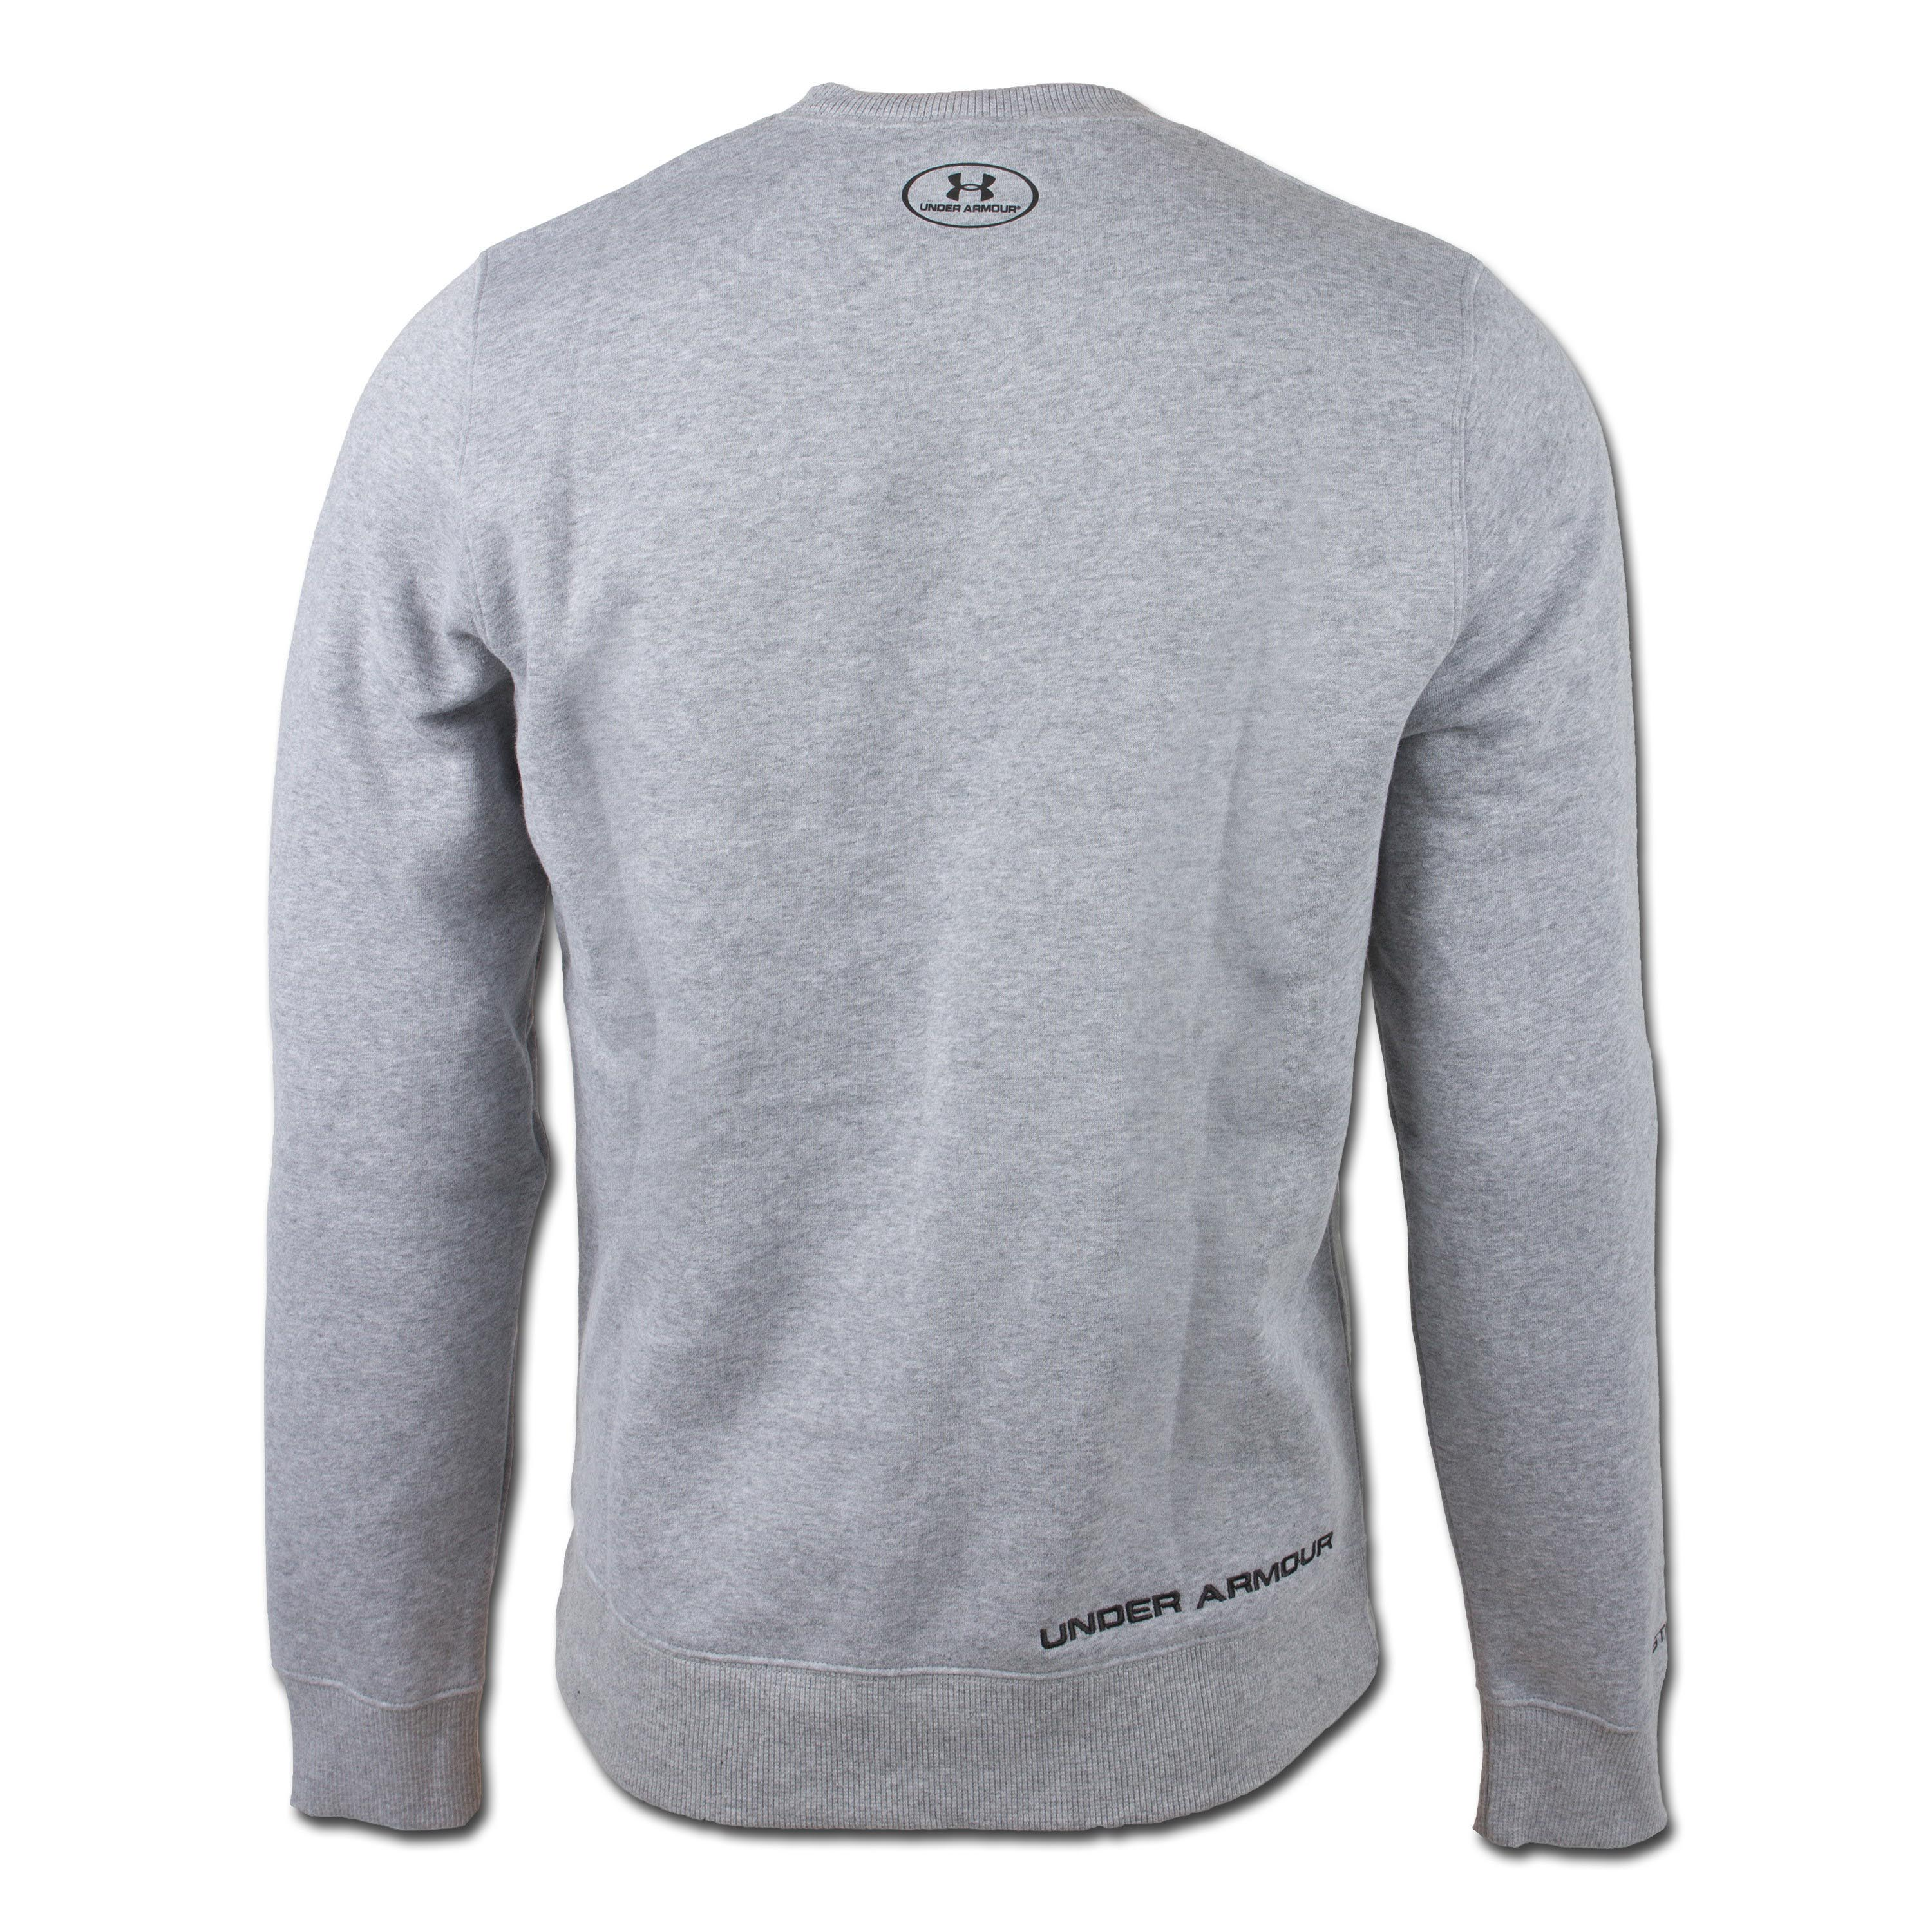 Under Armour Charged Cotton Rival Crew Shirt grau